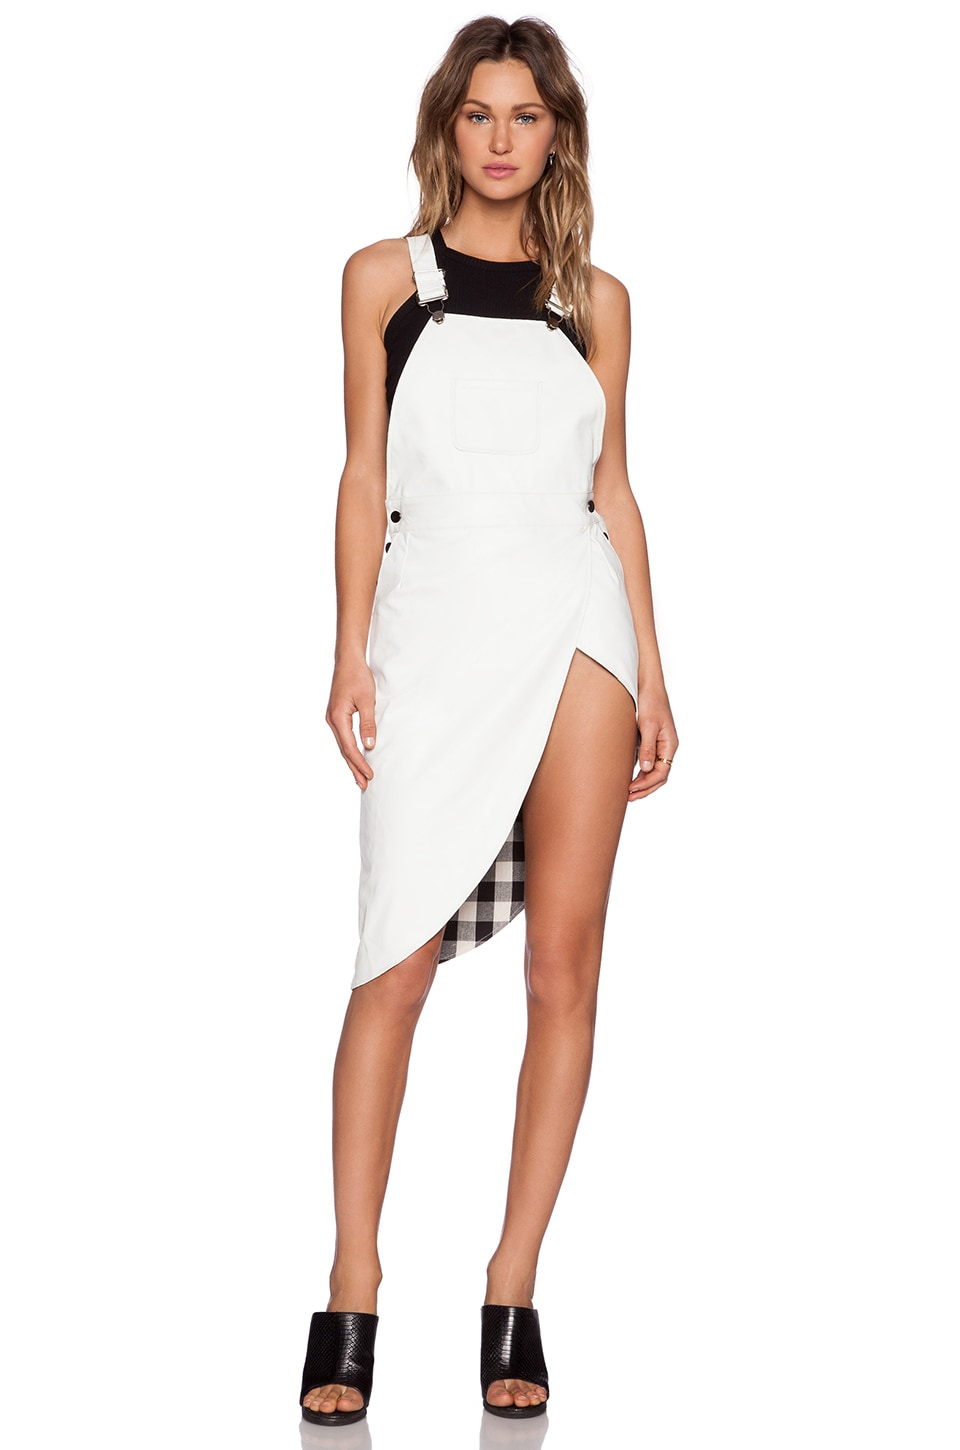 Nightwalker White Knight Overall Dress in White